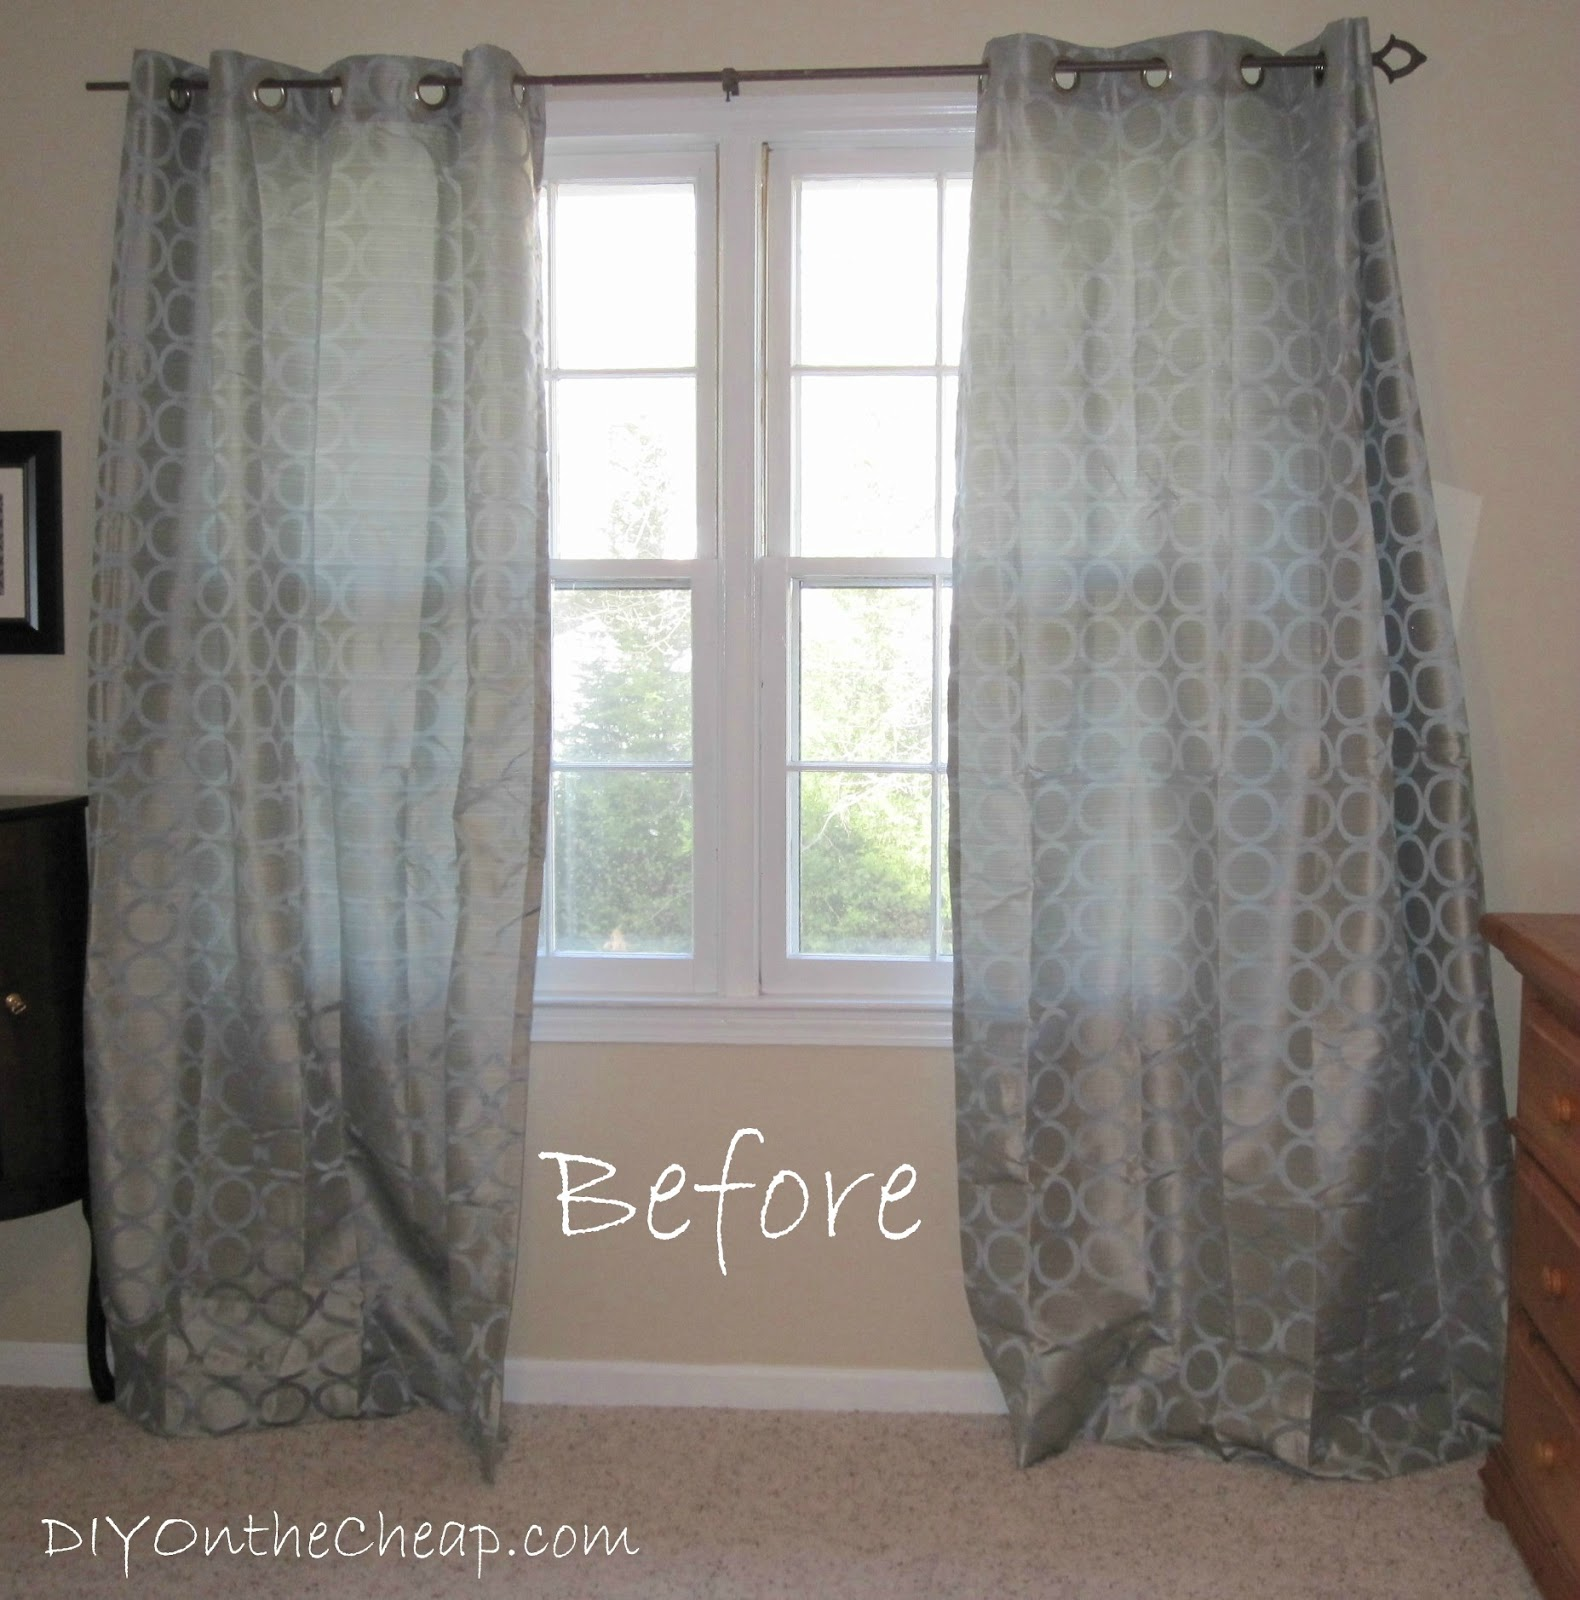 Easy No Sew Hem For Curtains